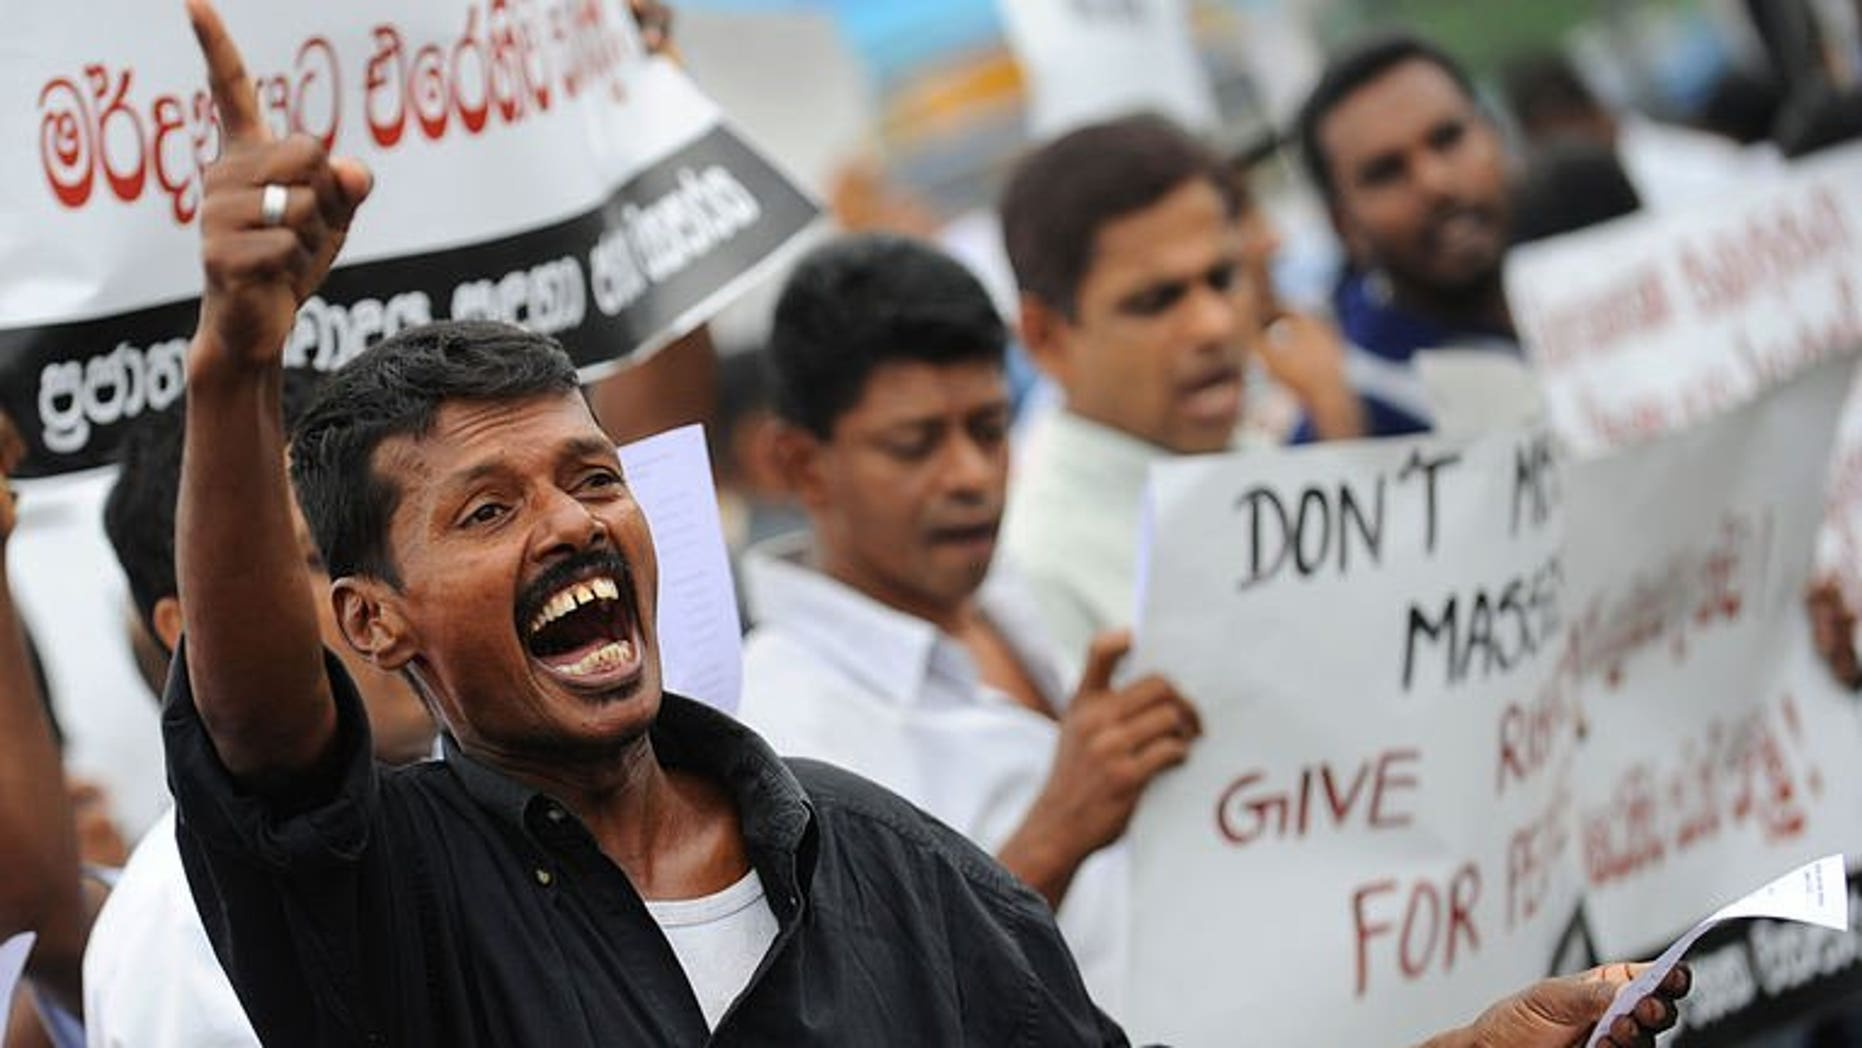 A supporter of Sri Lanka's Marxist JVP or People's Liberation Front demonstrates in the capital Colombo on August 5, 2013 to denounce a deadly army crackdown on villagers who were protesting against contaminated water supplies. Several hundred anti-government supporters staged the rare protest Monday.